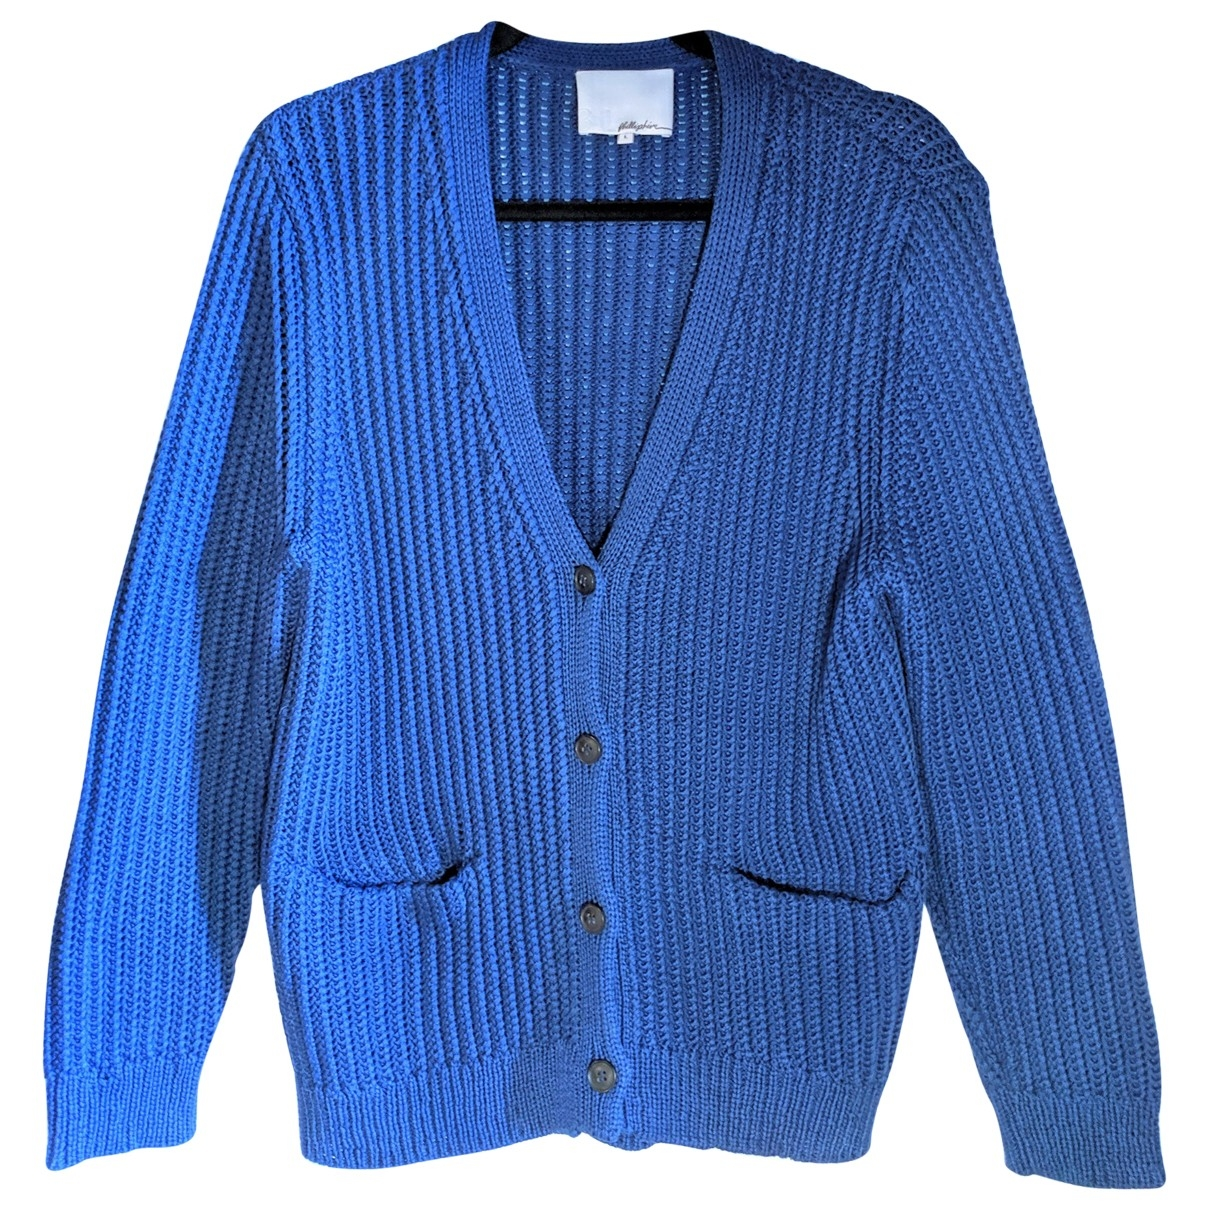 3.1 Phillip Lim \N Blue Cotton Knitwear for Women L International